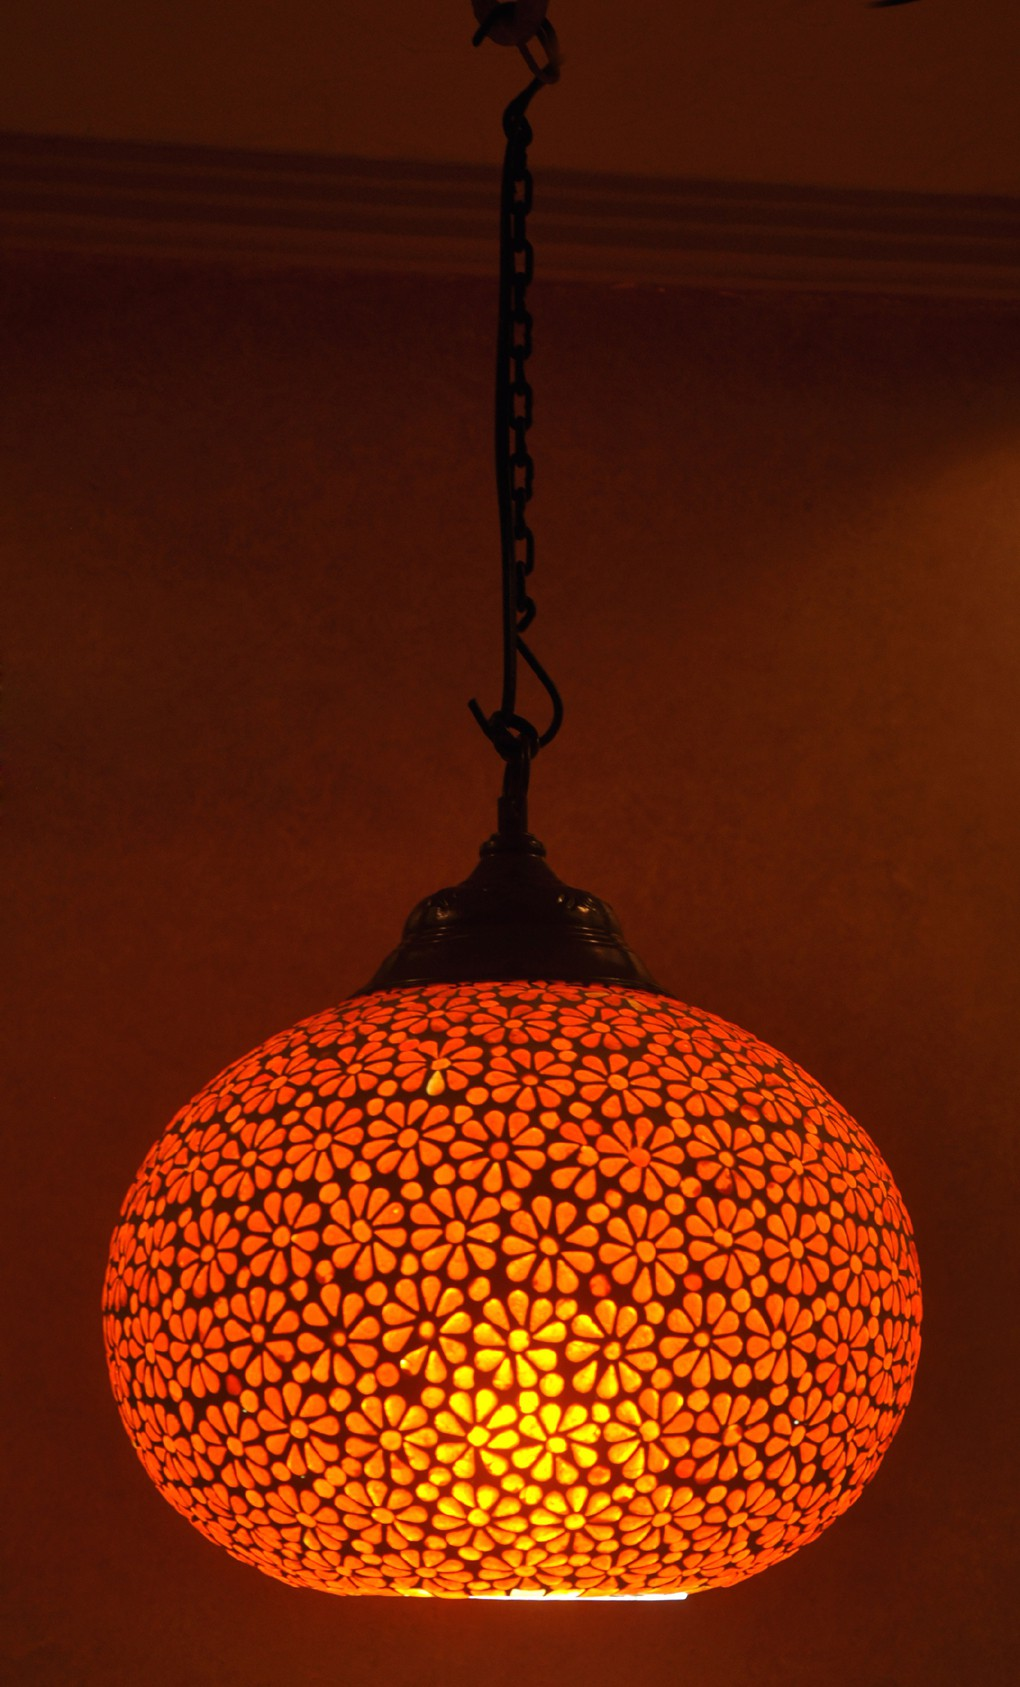 Lal Haveli Antique Hanging Light Indoor Night Lamp Ceiling Pendant Orange Glass Lantern